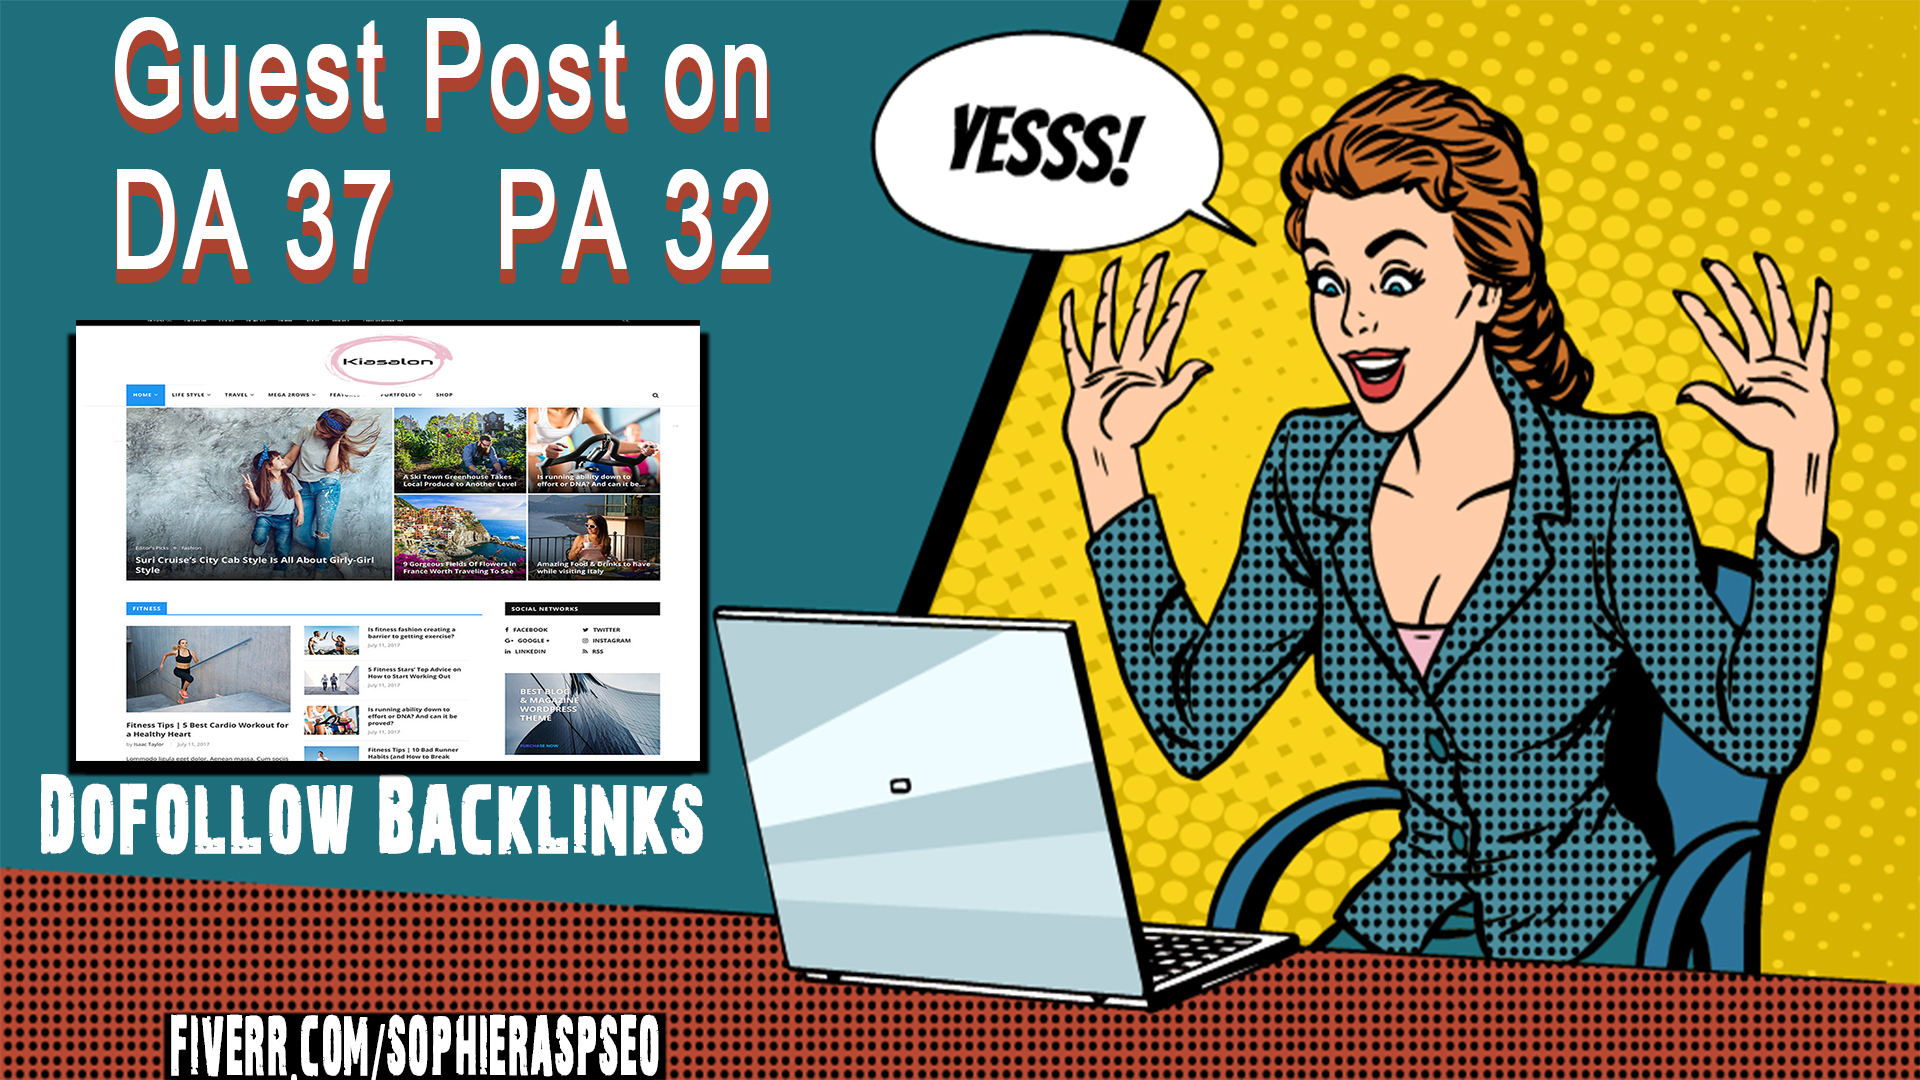 Guest Post On My Da 37 Magazine Blog With Dofollow Backlinks